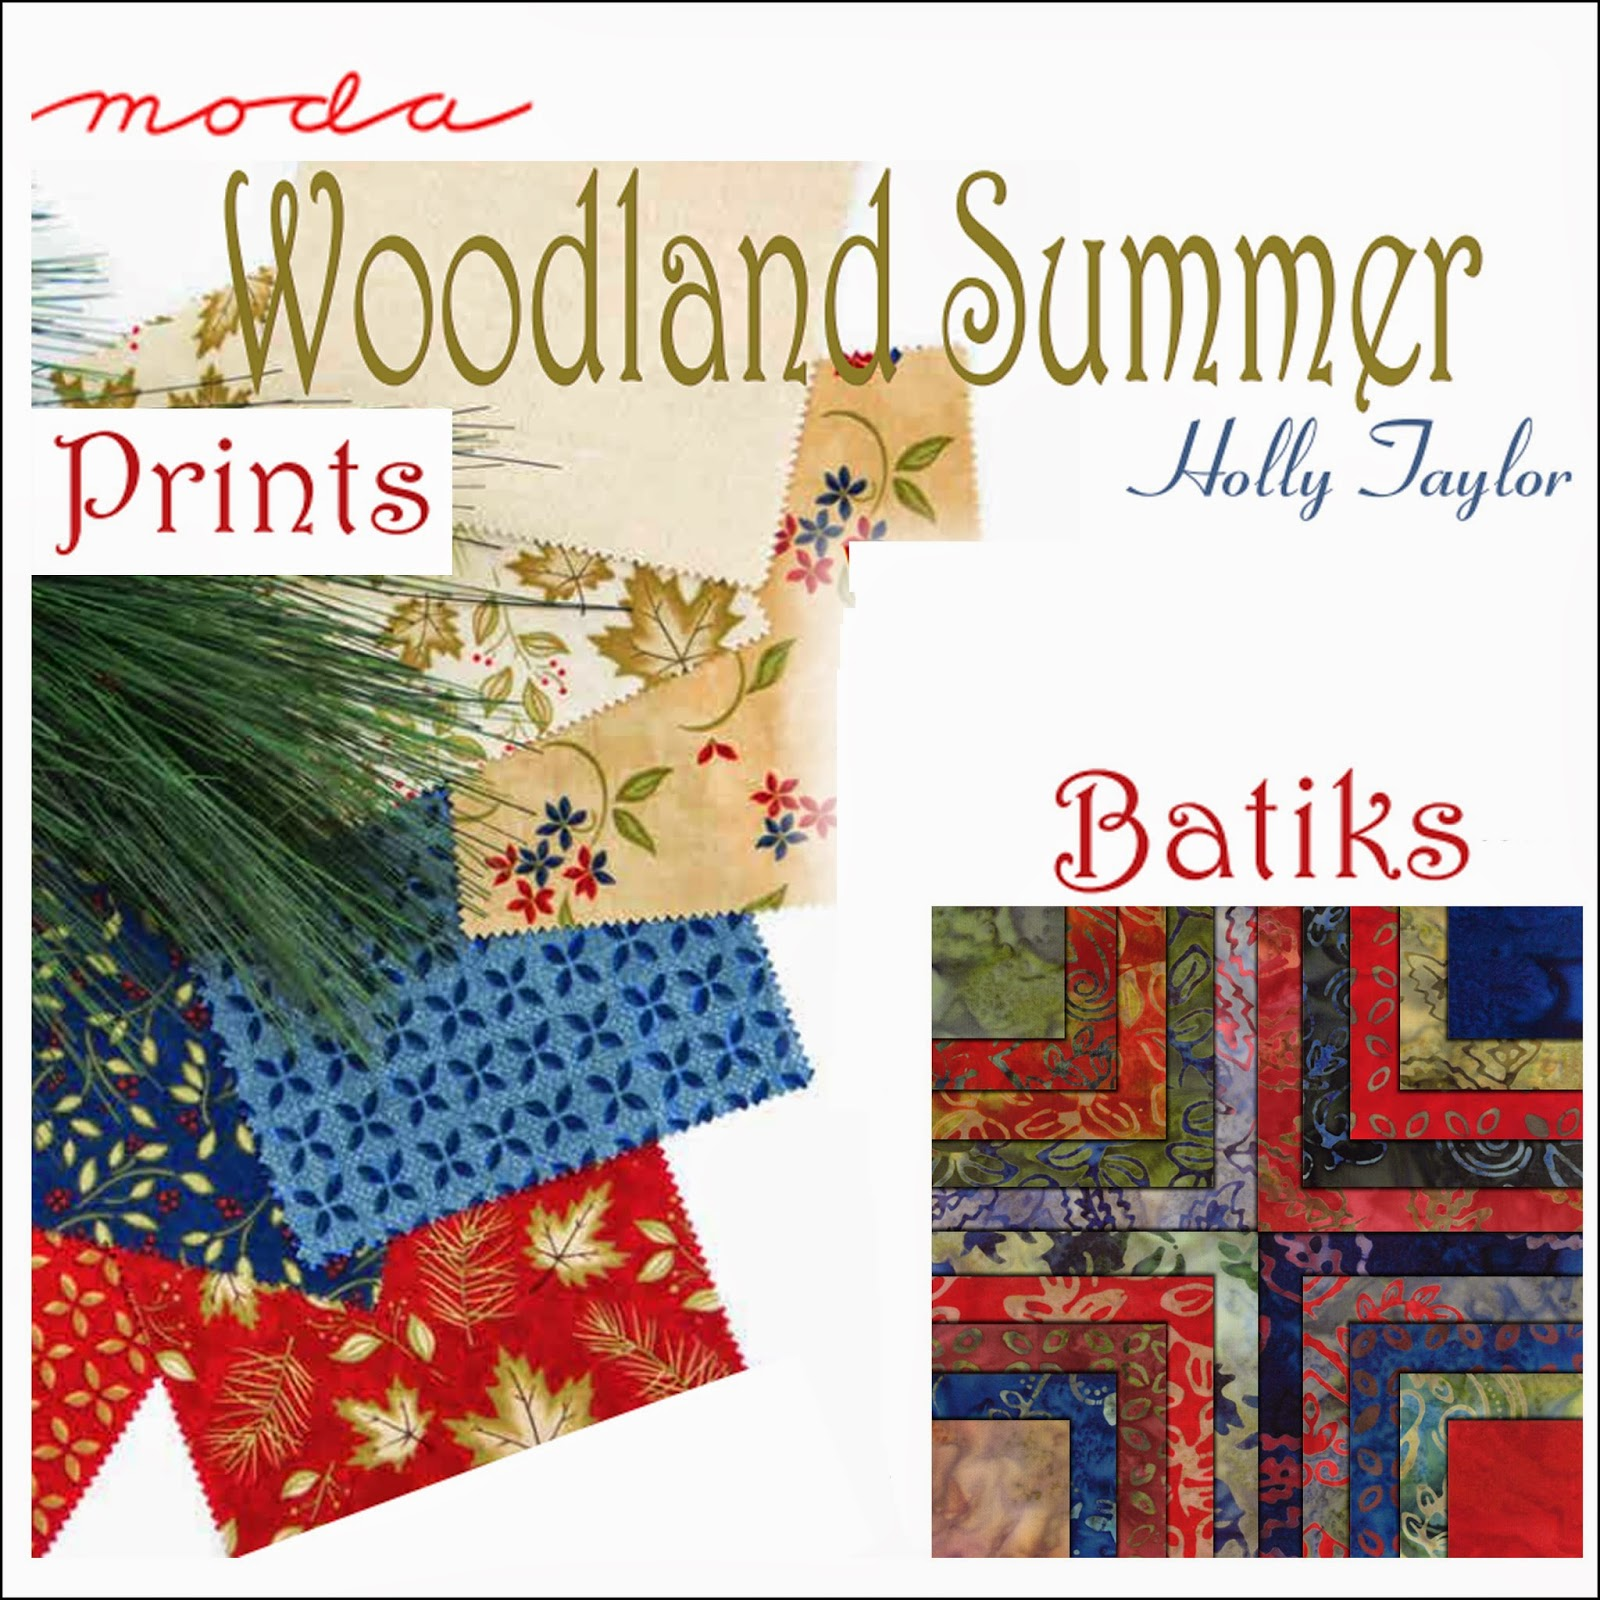 Moda WOODLAND SUMMER PRINTS BATIKS Quilt Fabric by Holly Taylor